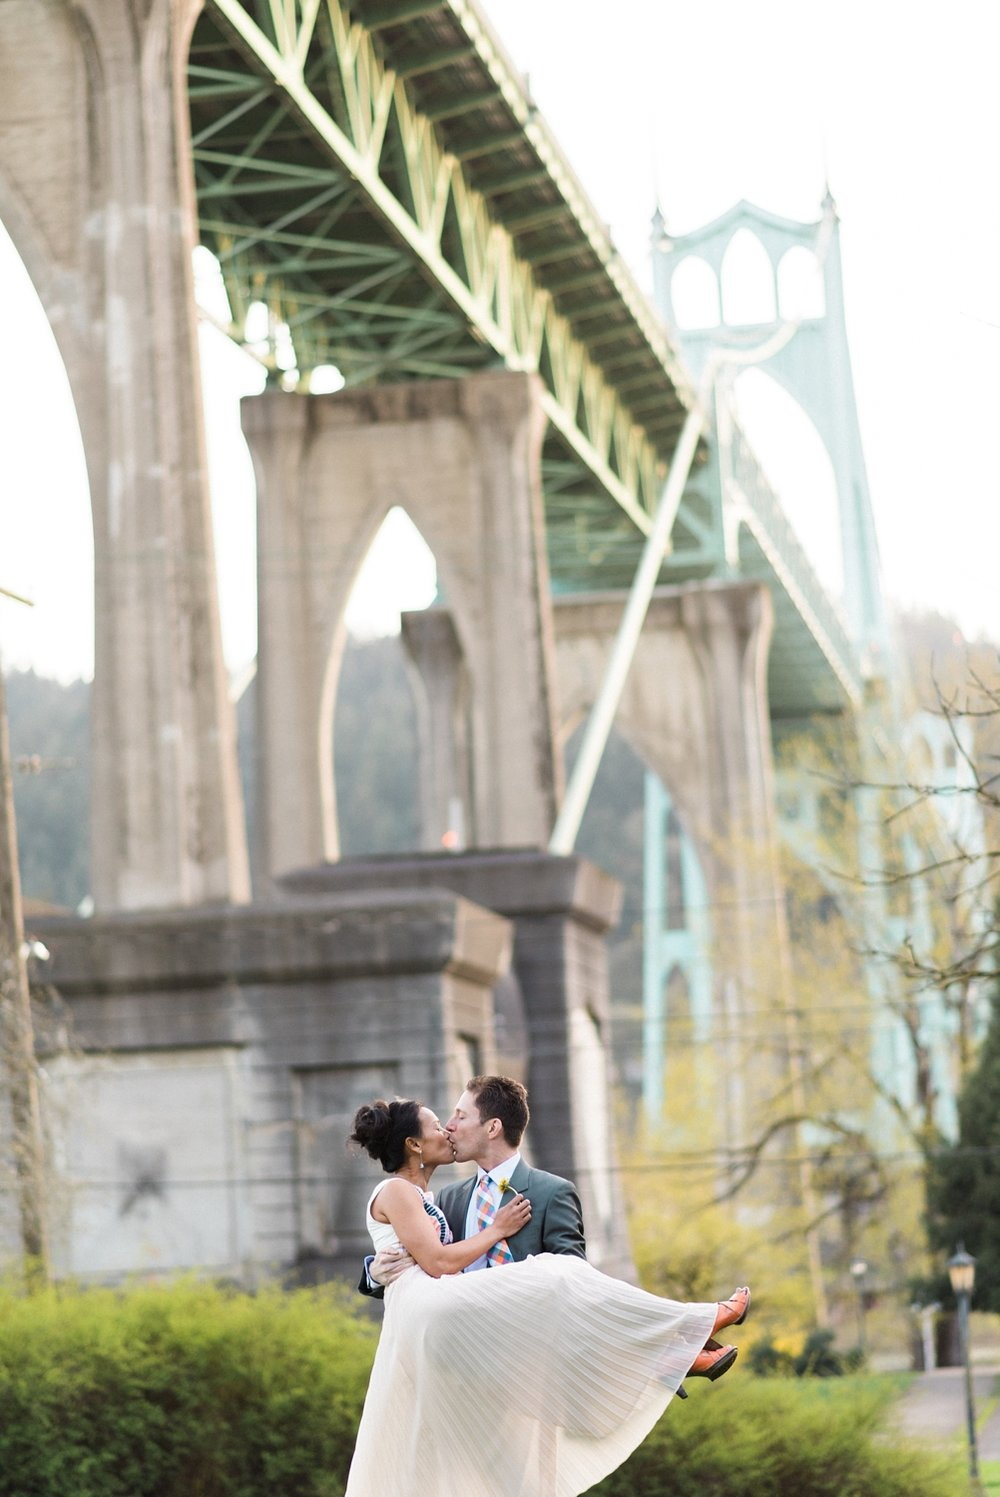 portland-waterfront-engagement-cherry-blossom-cathedral-park-sokhorn-jay-311_cr.jpg